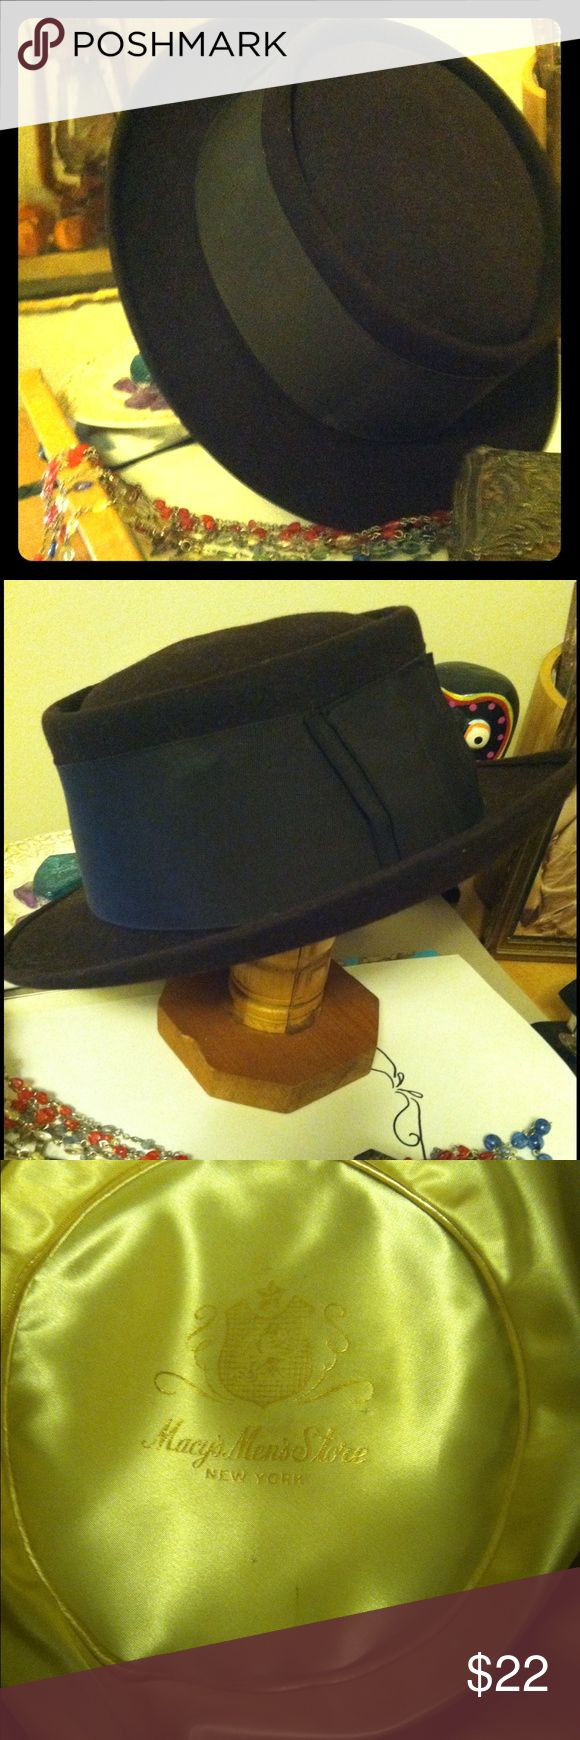 "Vintage men's wool hat From Macys ""men's collection"" in a dark brown soft wool and matching wide ribbon. Thin brimmed with even circumference unlike a fedora. Soft edges and a cream satin interior broken in and comfy size large. Fits like a women's size m-l hat. Macy's Accessories Hats"